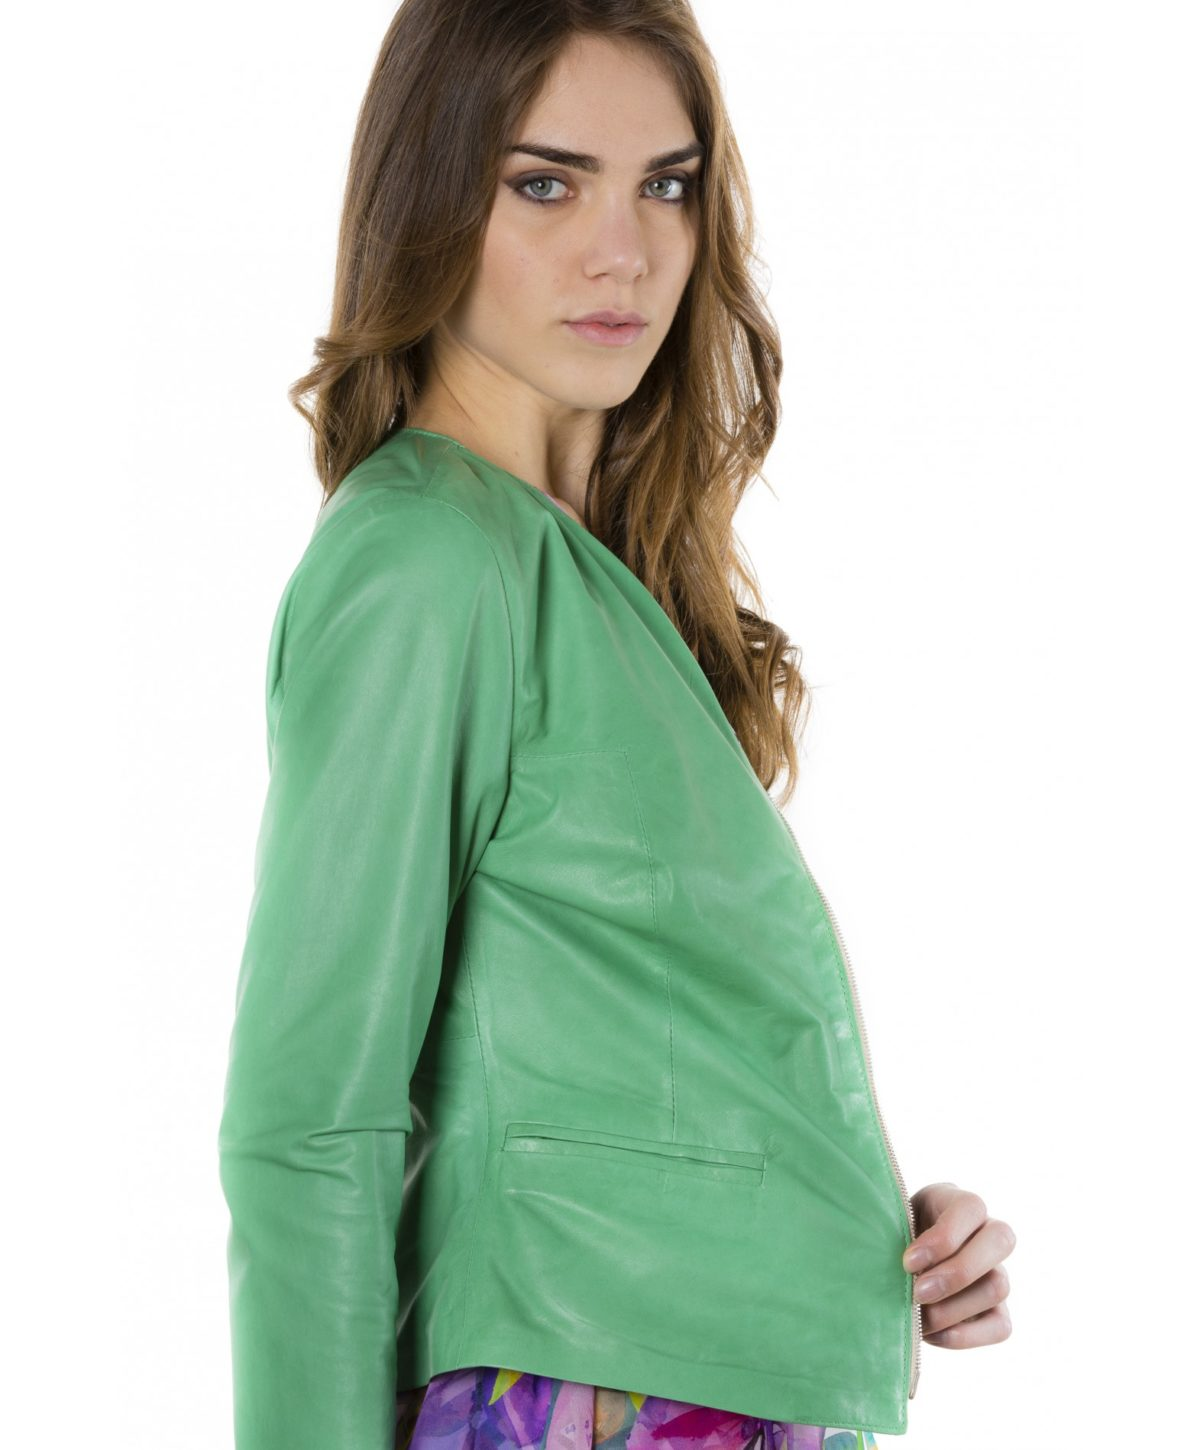 clear-green-color-lamb-leather-round-neck-jacket (4)